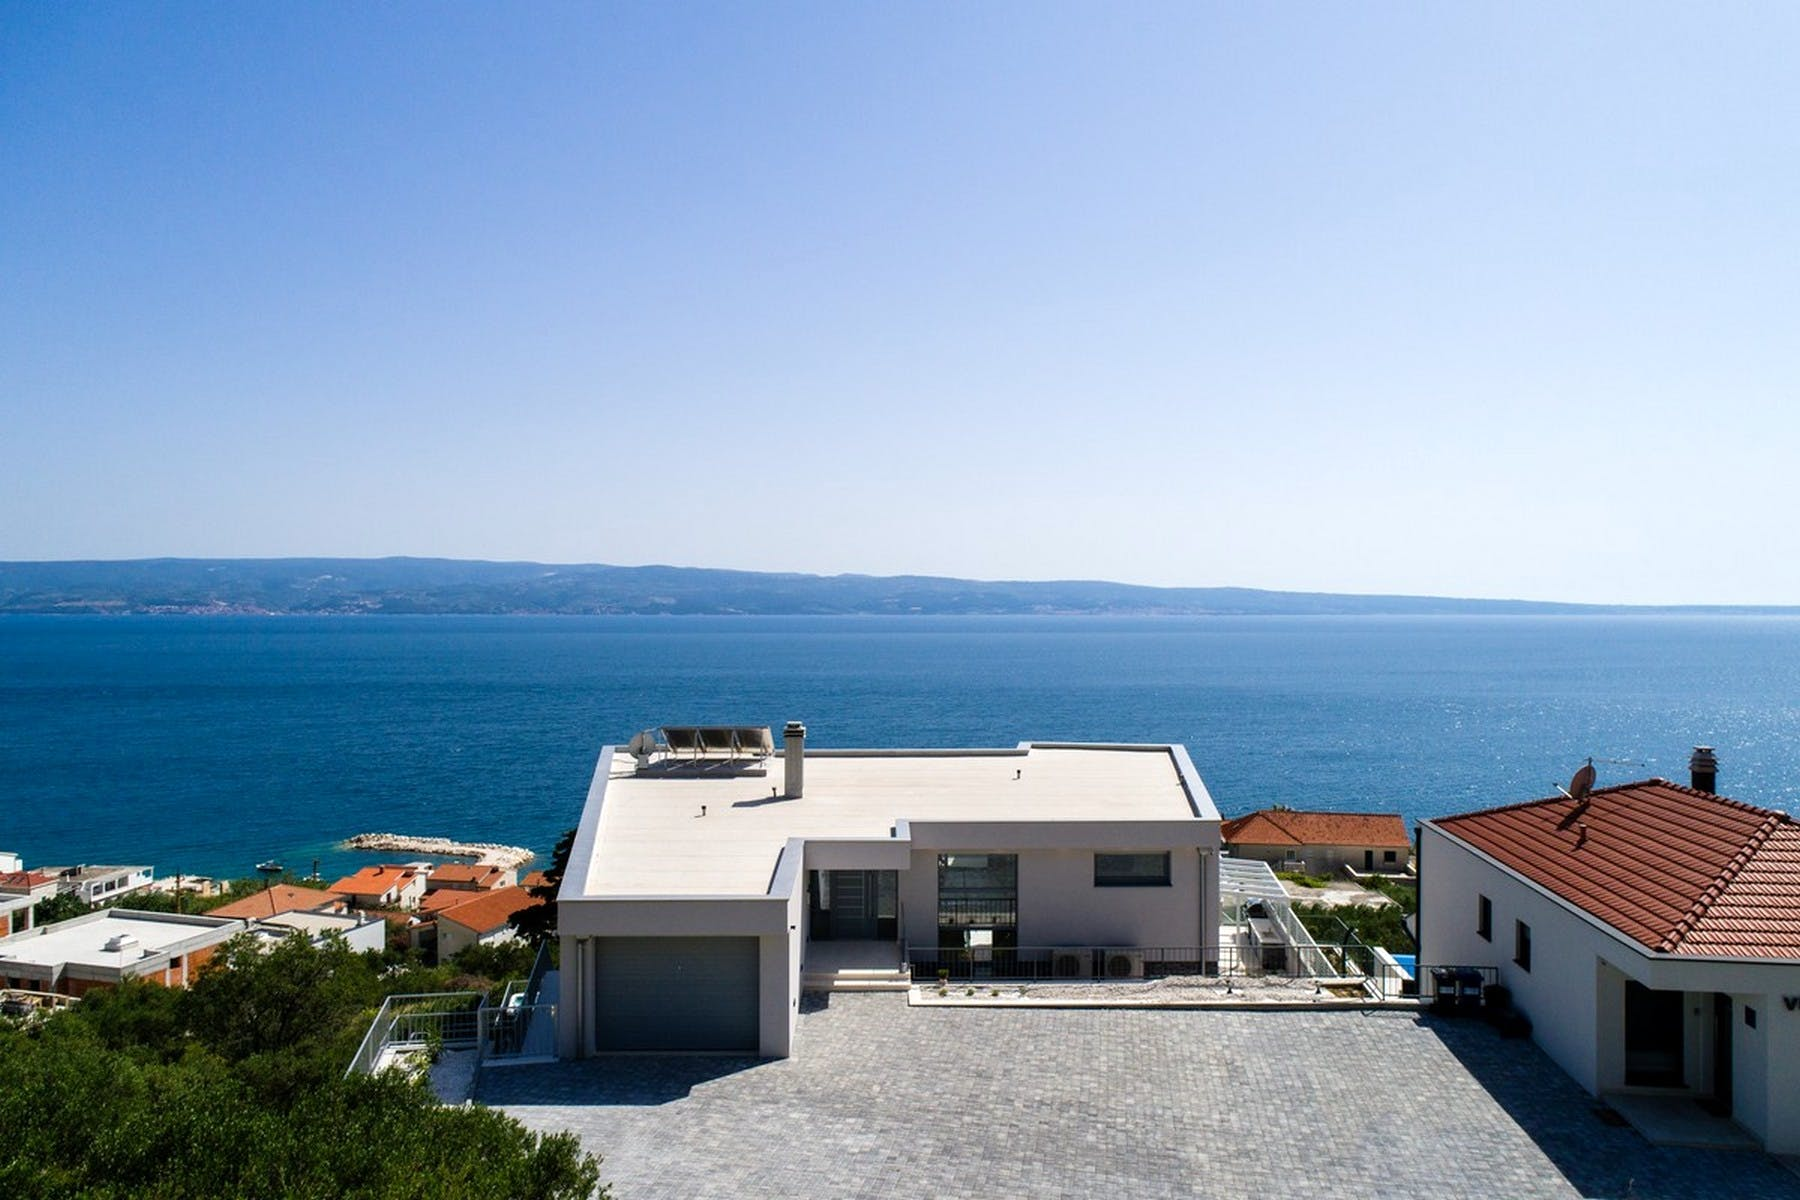 View from the back of the villa